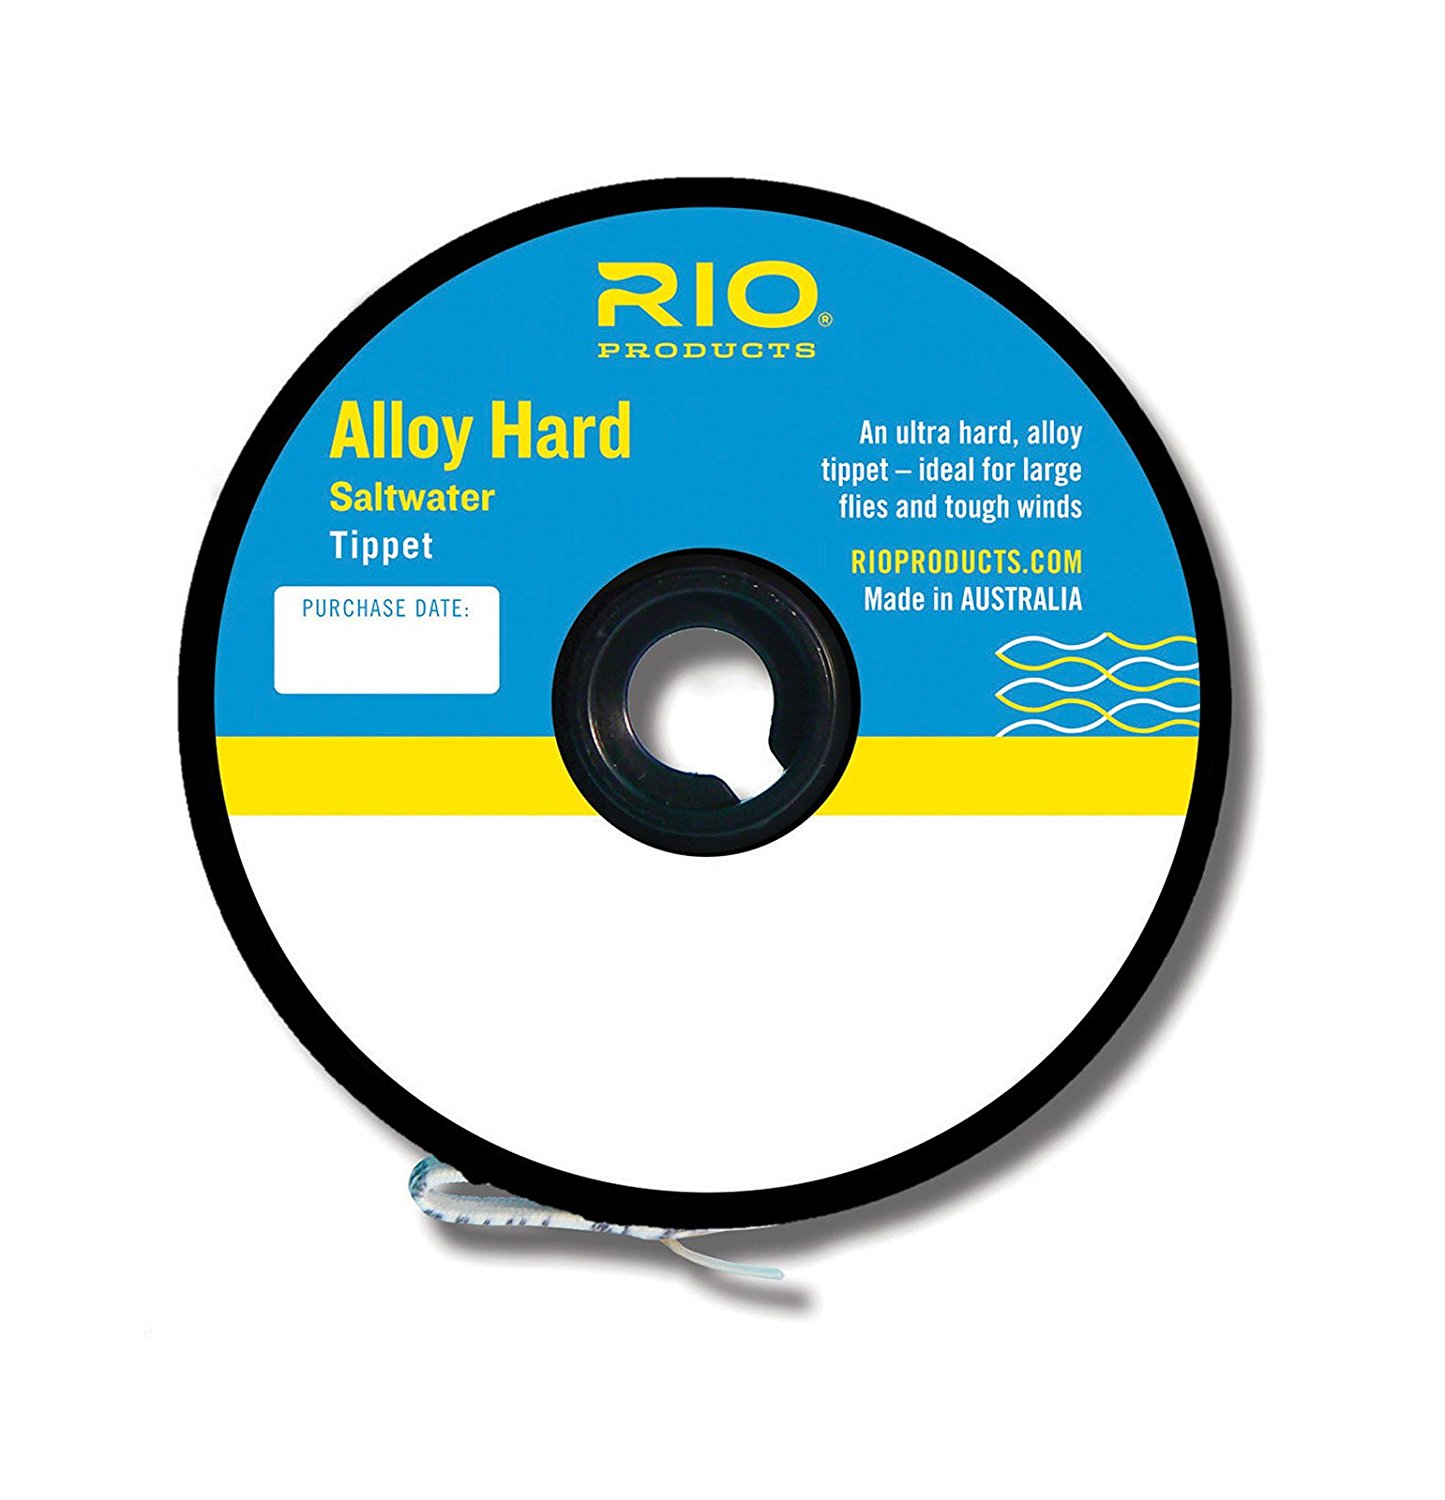 Alloy Hard Saltwater Mono Tippet 25lb 12kg, RIO ALLOY - HARD SW MONO TIPPET - 25lb - Fly Fishing By Rio Ship from US